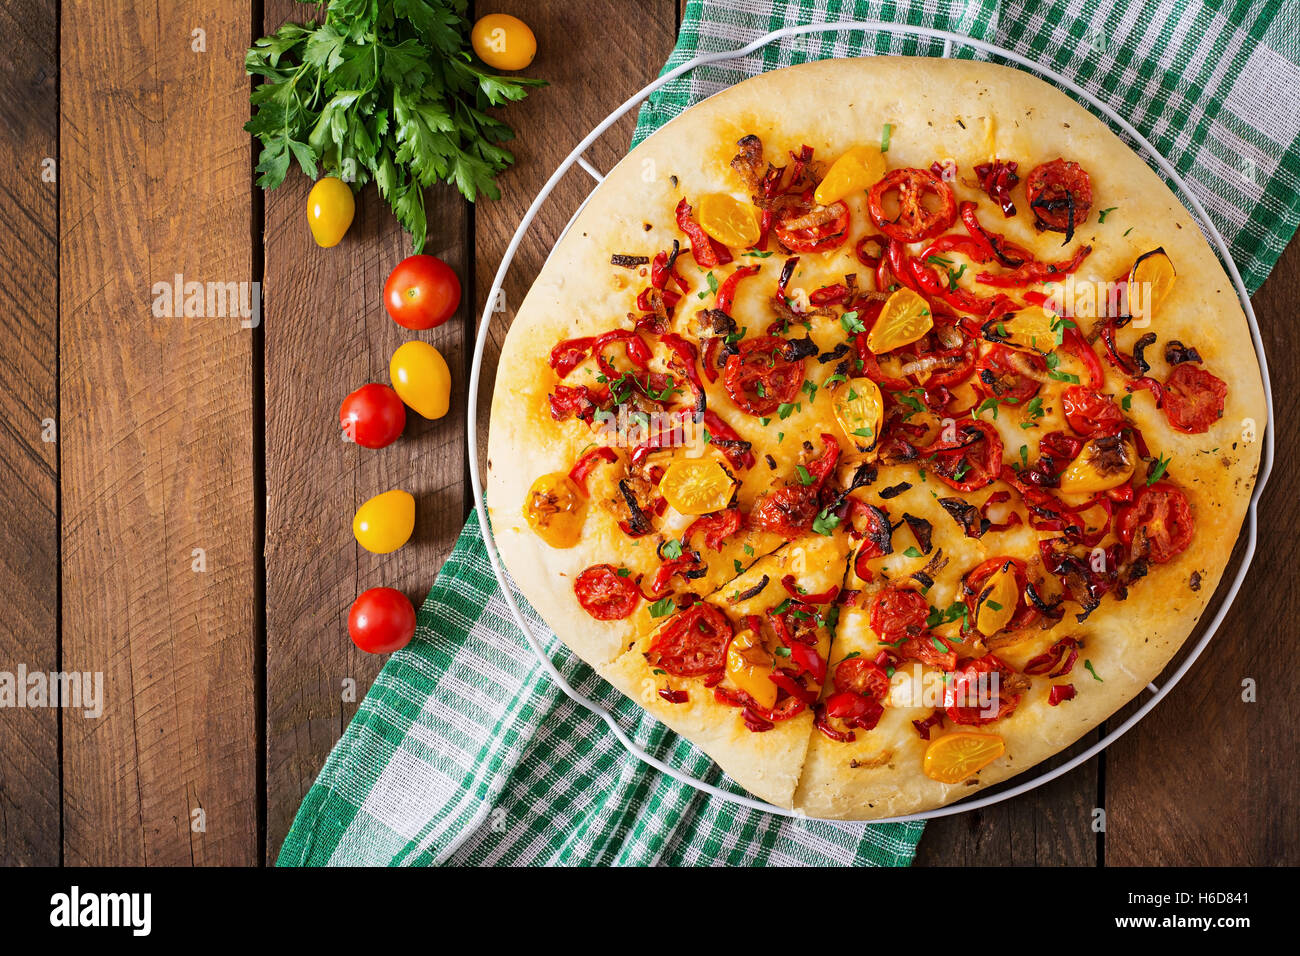 Italian focaccia with tomatoes, peppers and onions - Stock Image